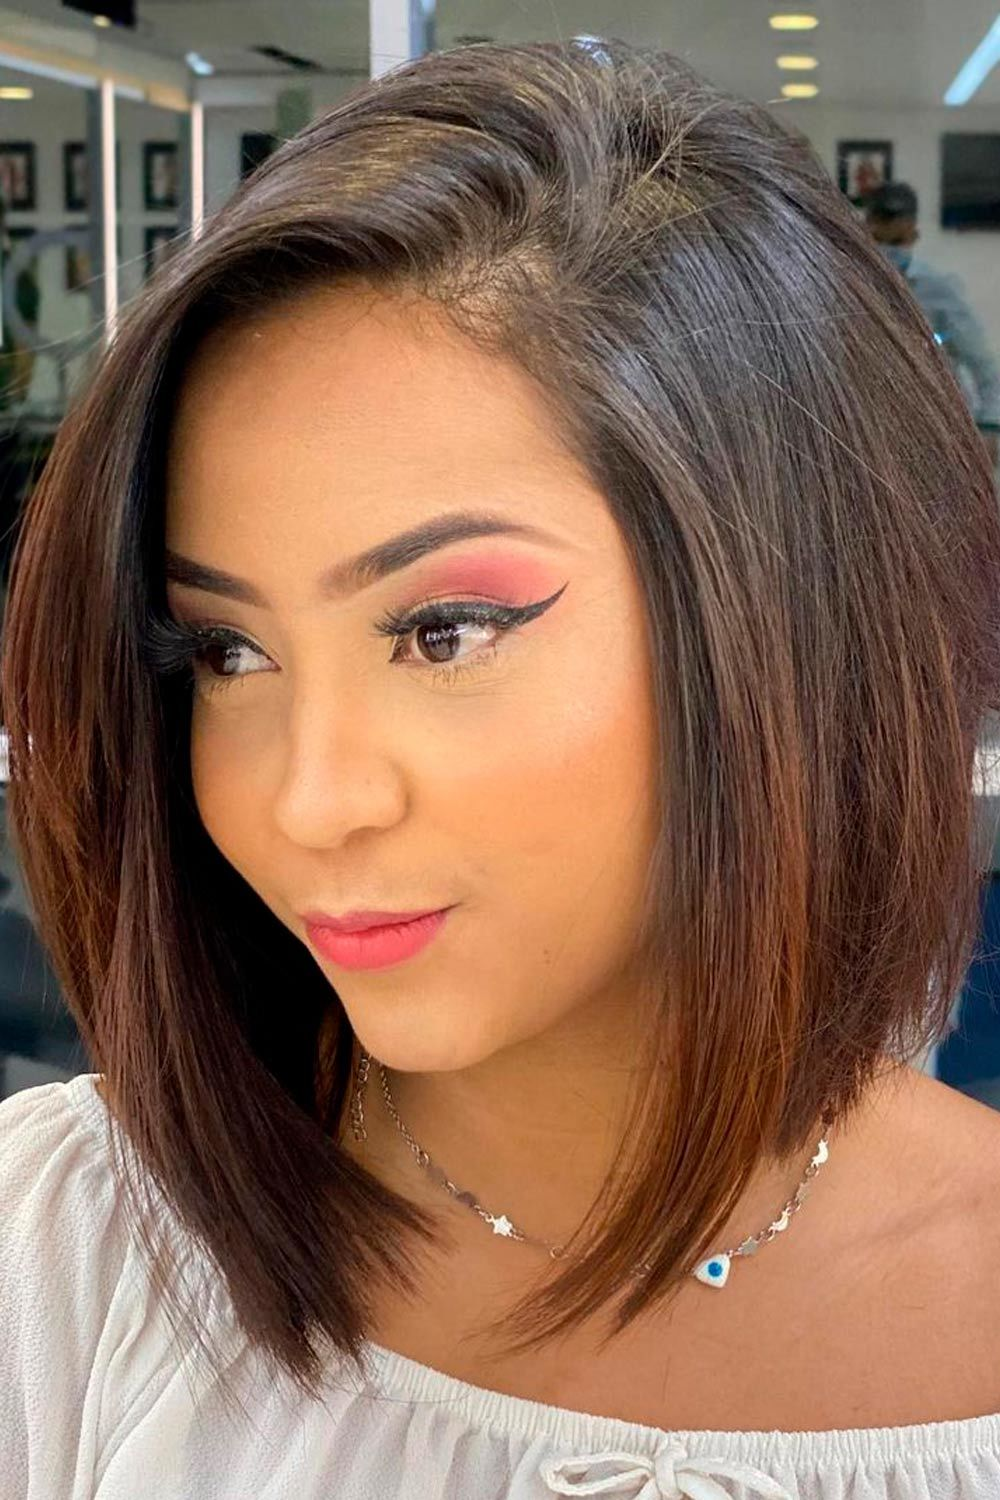 A-Line Straight Bob, short curly hairstyles for round faces, short hairstyles for women with round faces, short naturally curly hairstyles for round faces,